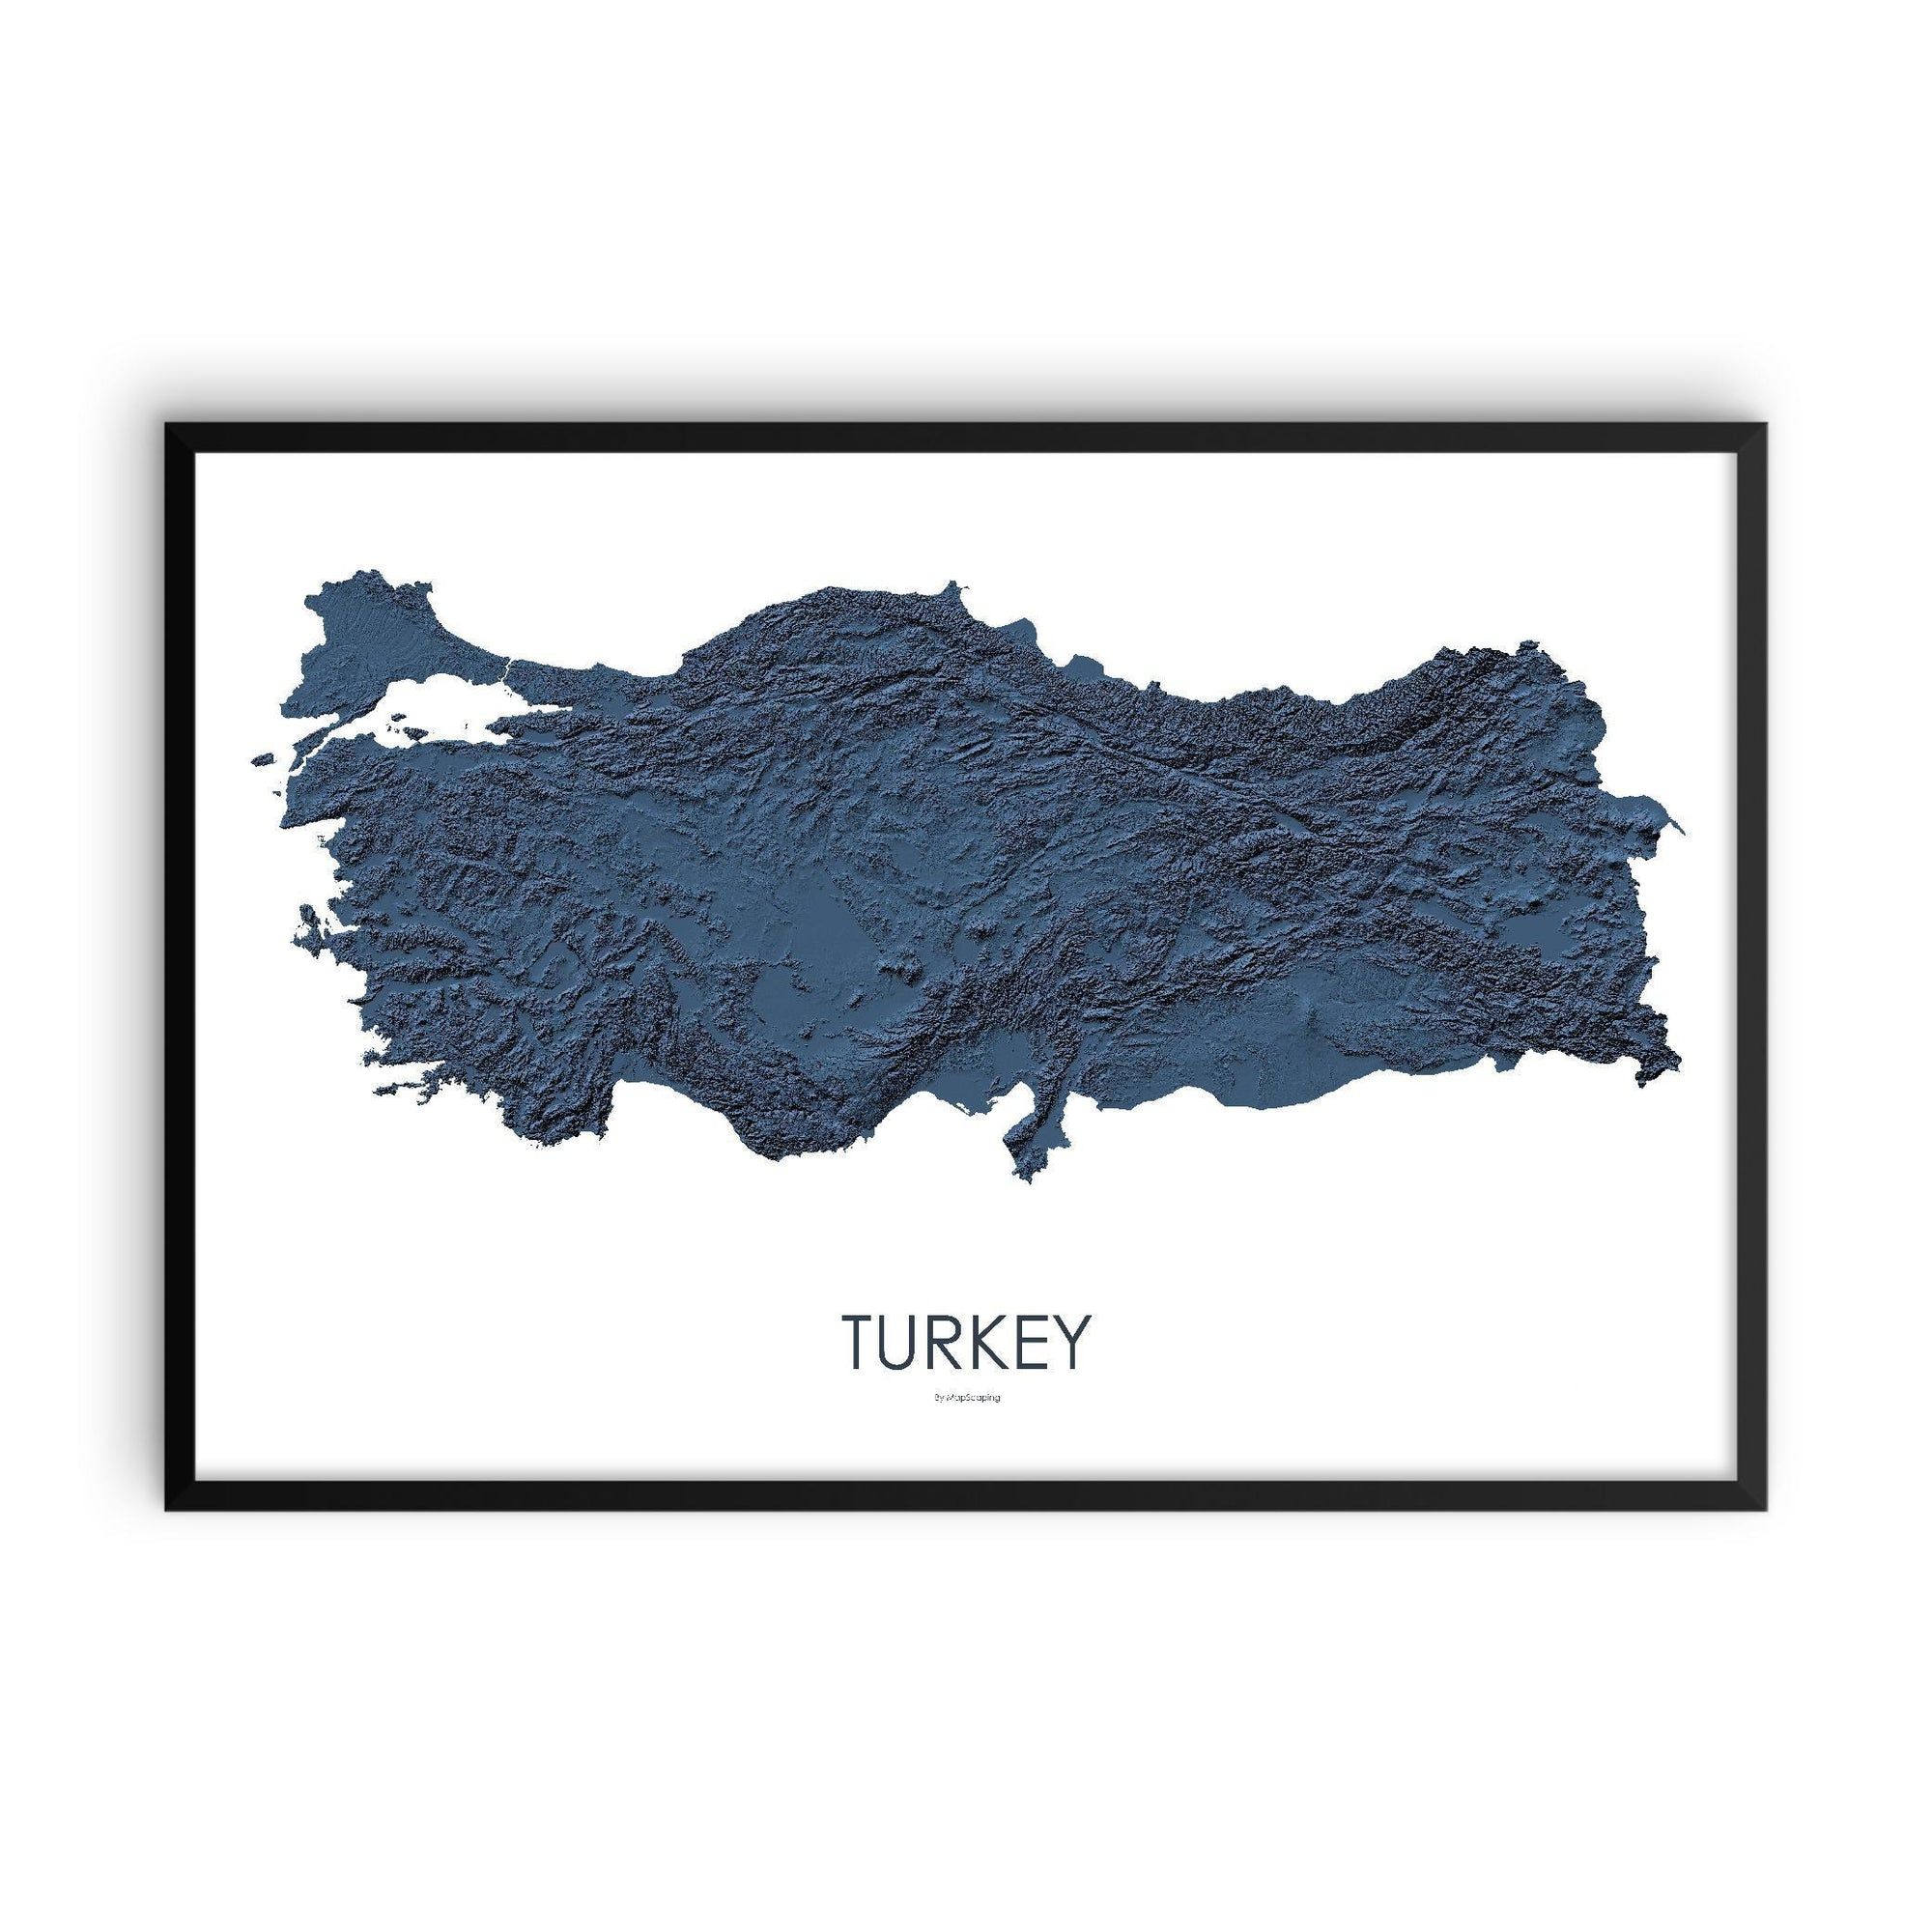 Turkey Poster 3D Midnight Blue-topographic wall art map by MapScaping